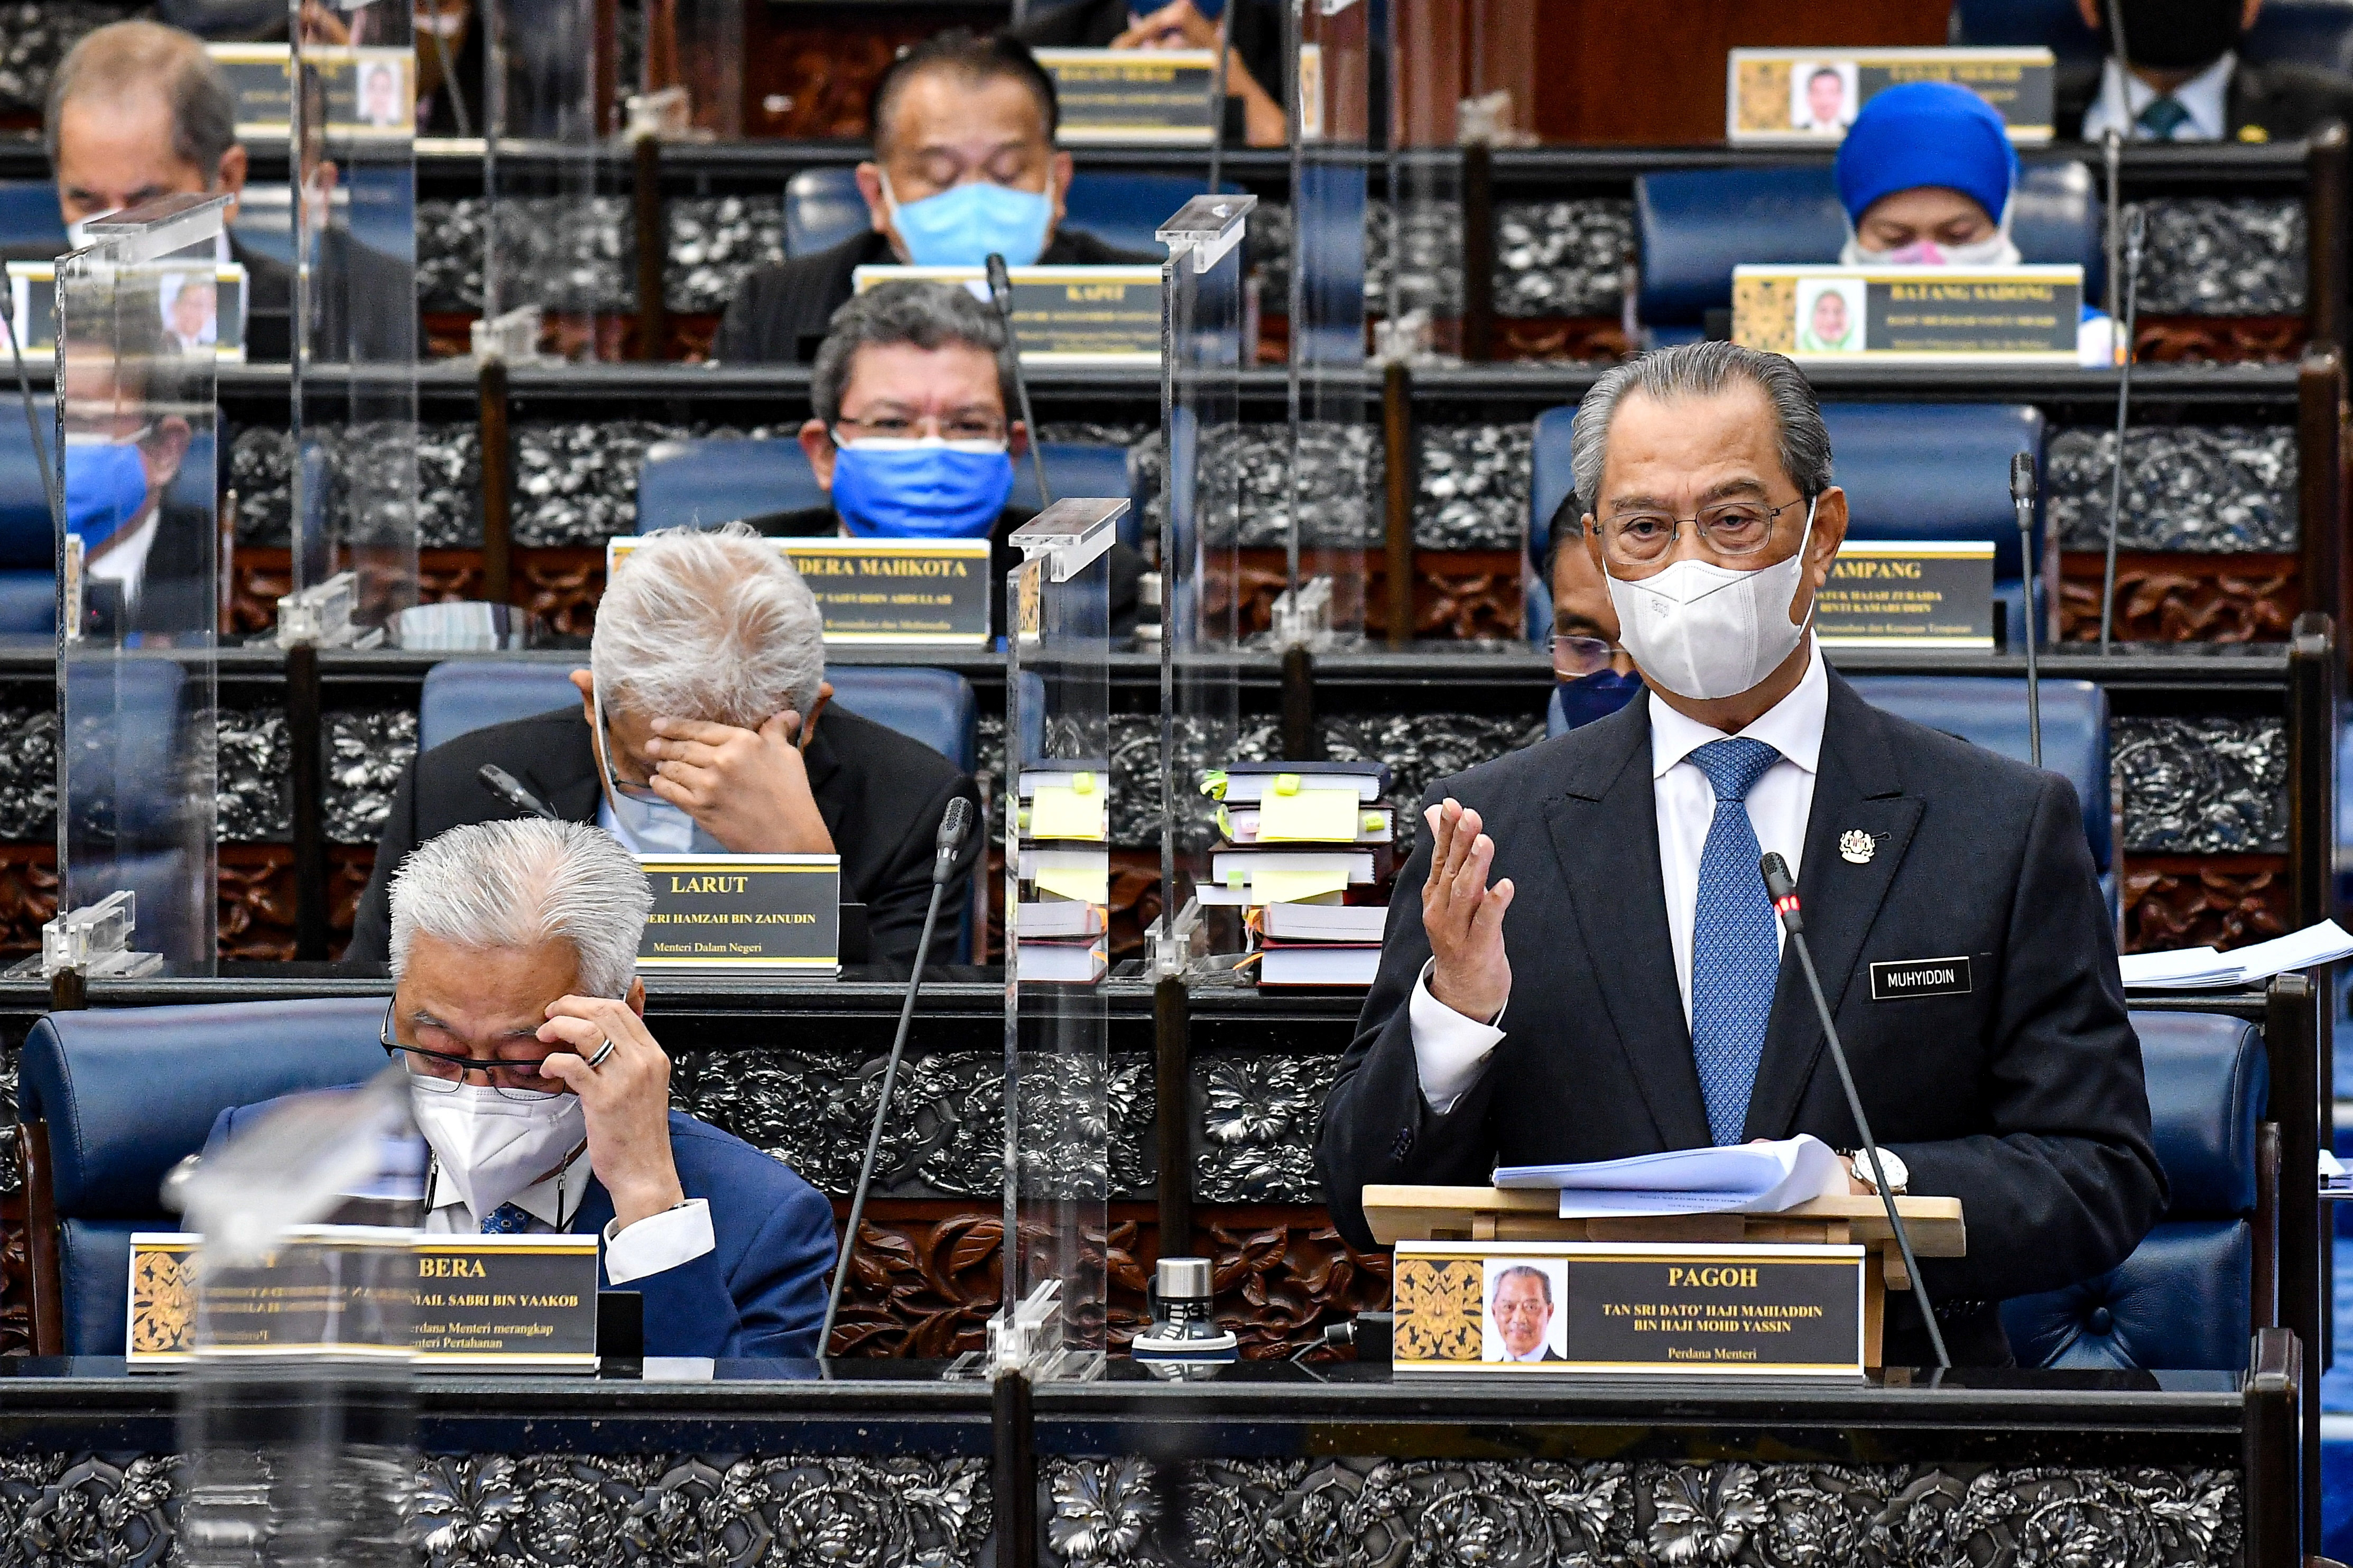 Malaysia S Embattled Pm Tries To Appease King Allies Up Pressure Reuters